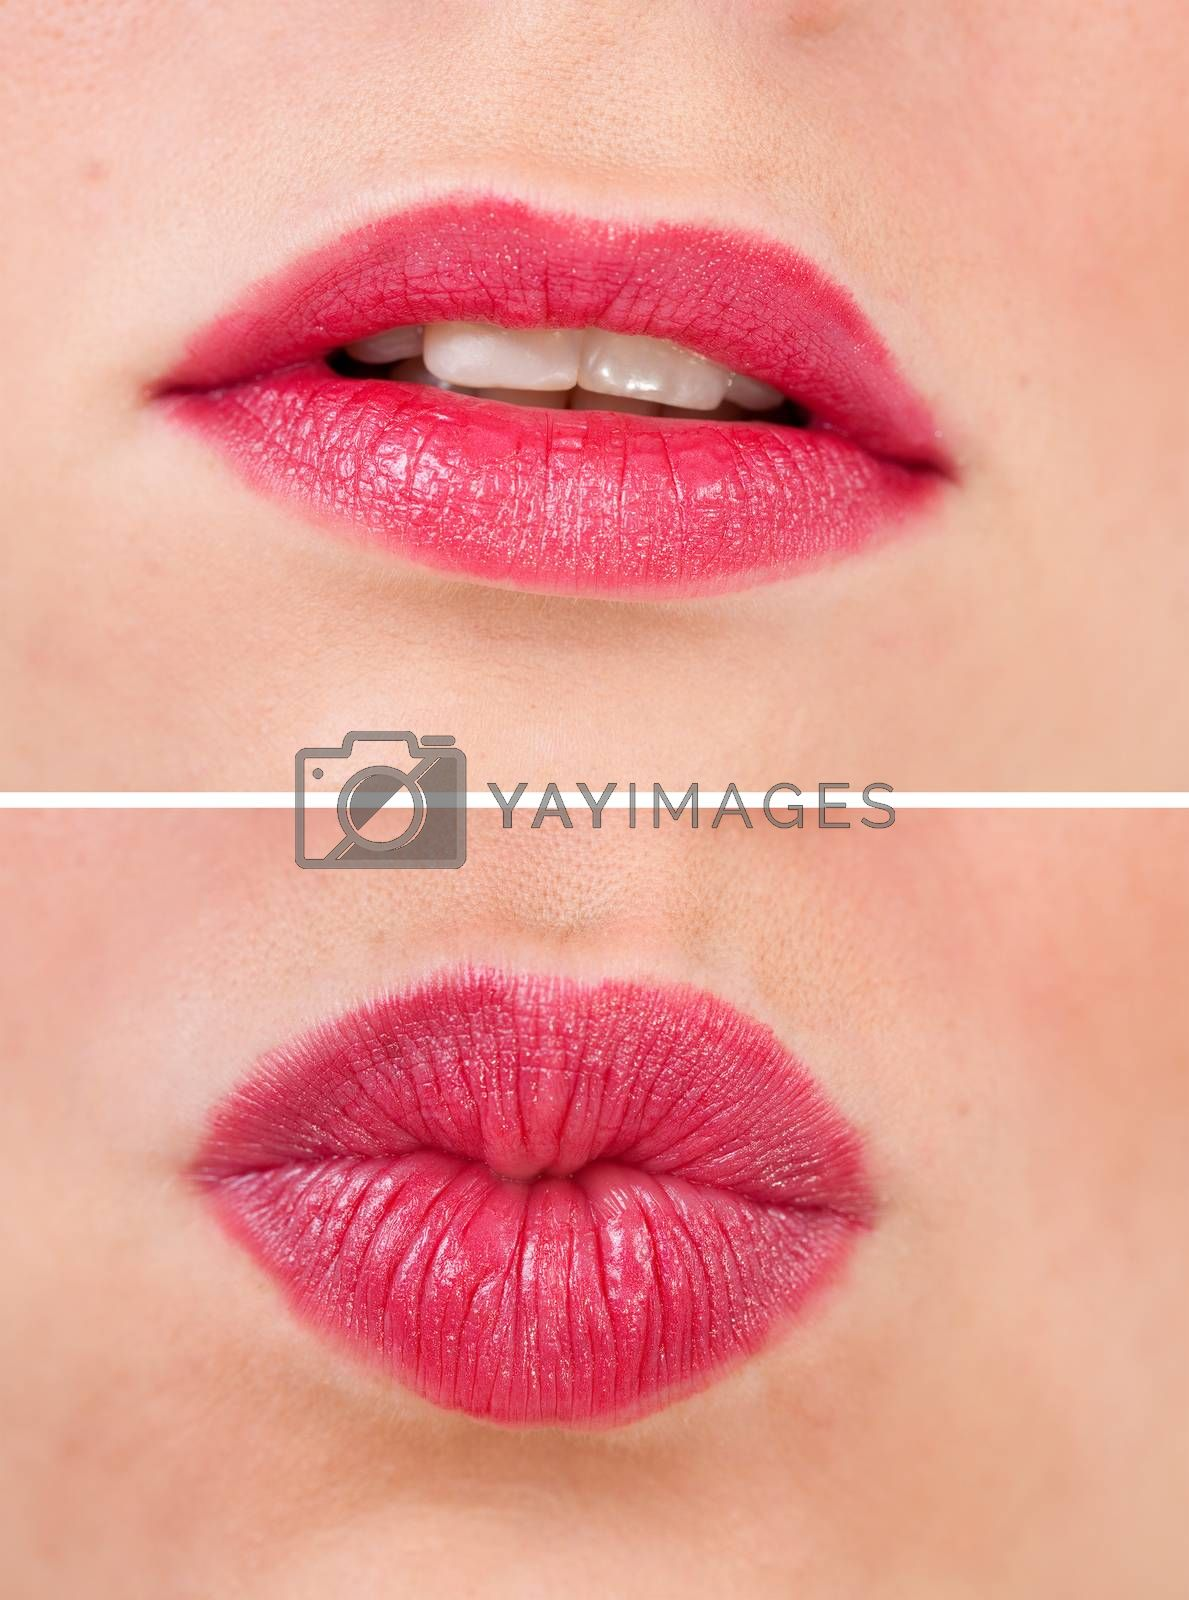 two photos of red  mouth from young women